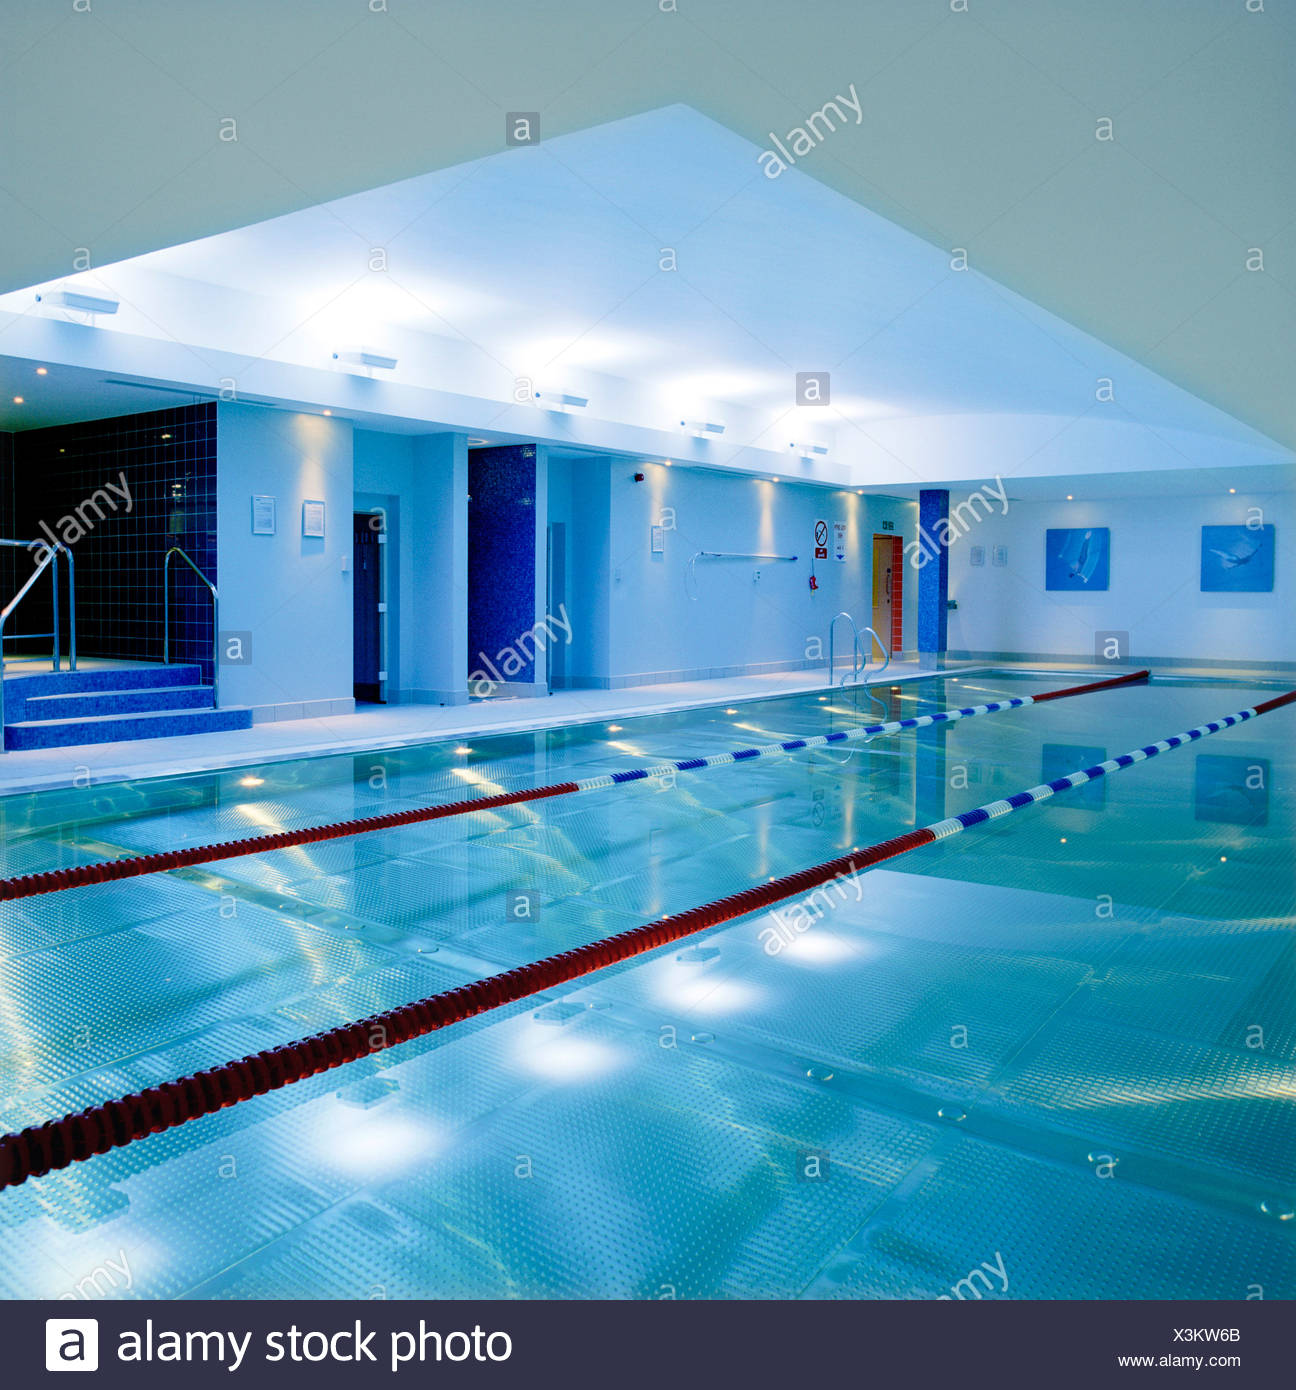 Refurbishment of a gym club including the swimming pool ...